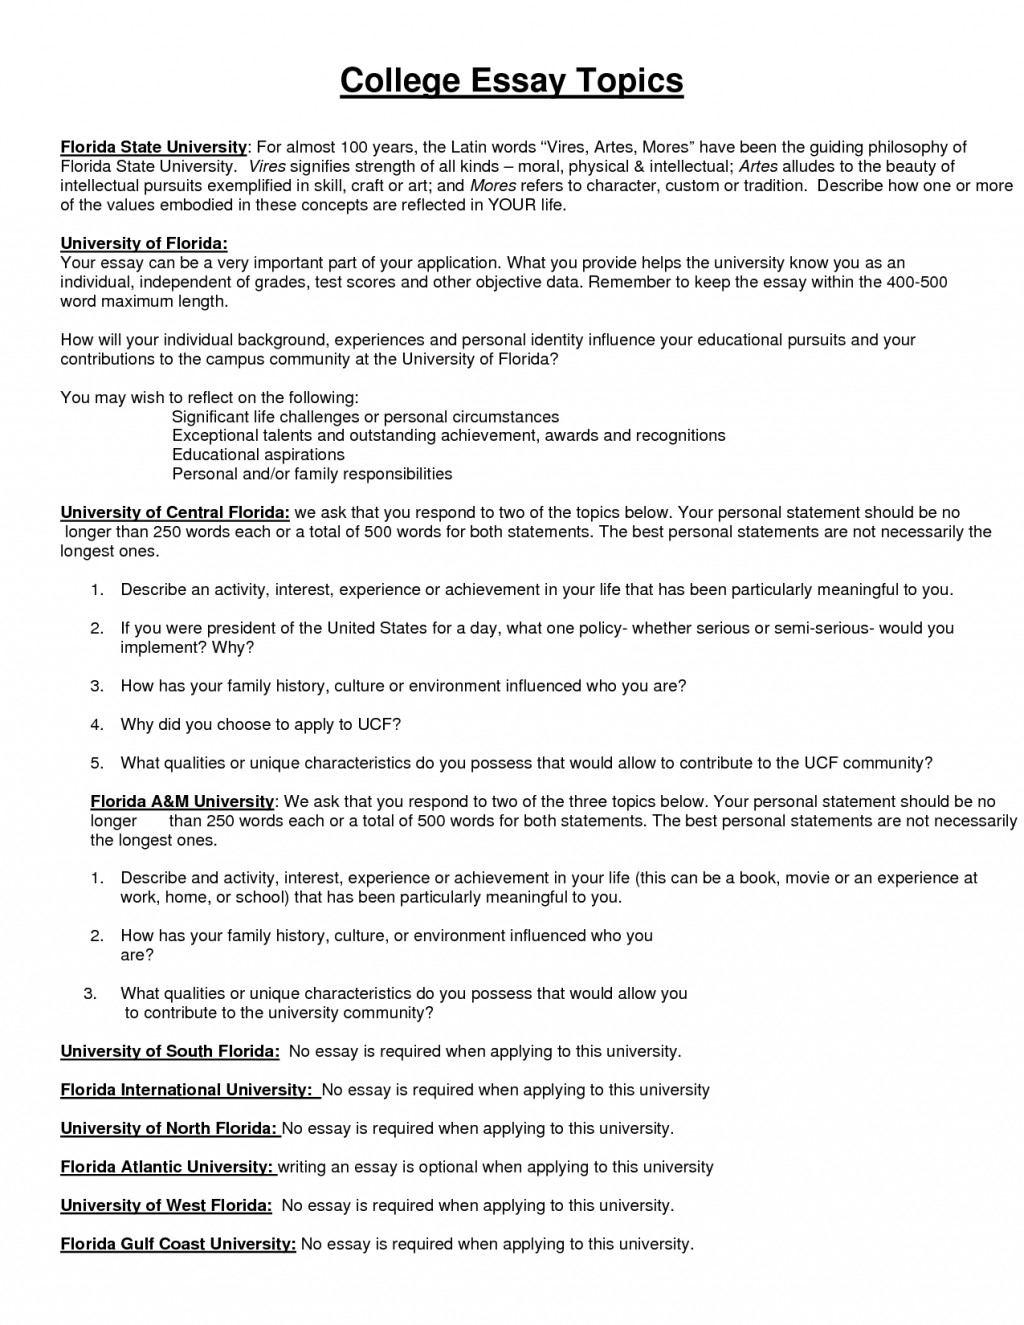 009 4khqbt5dlt College Essay Prompts Unforgettable Prompt Examples Uc #1 Writing 2 Large